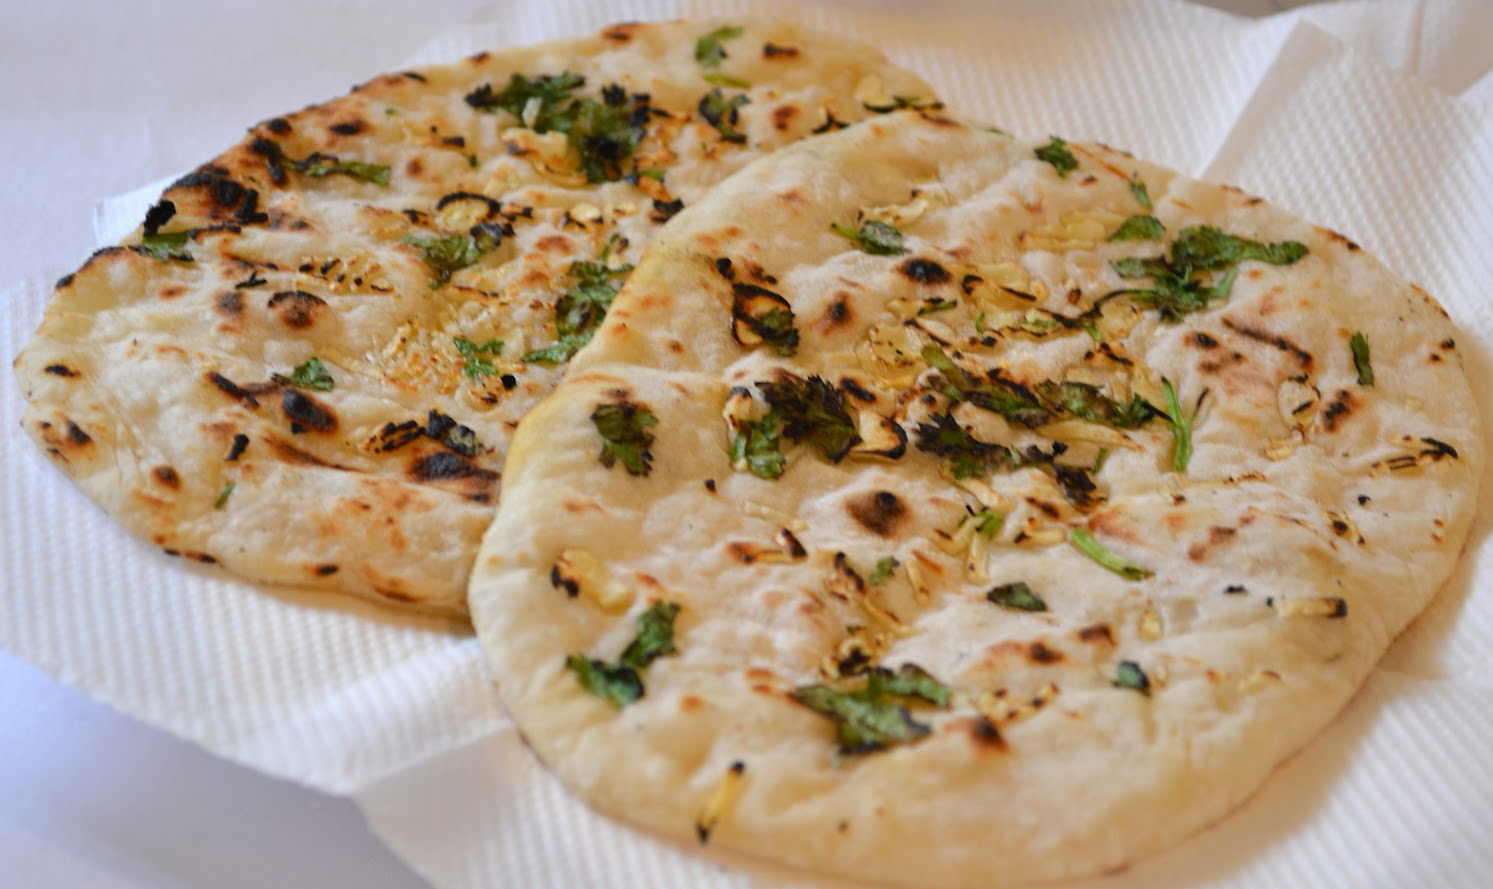 Chilli garlic Naan